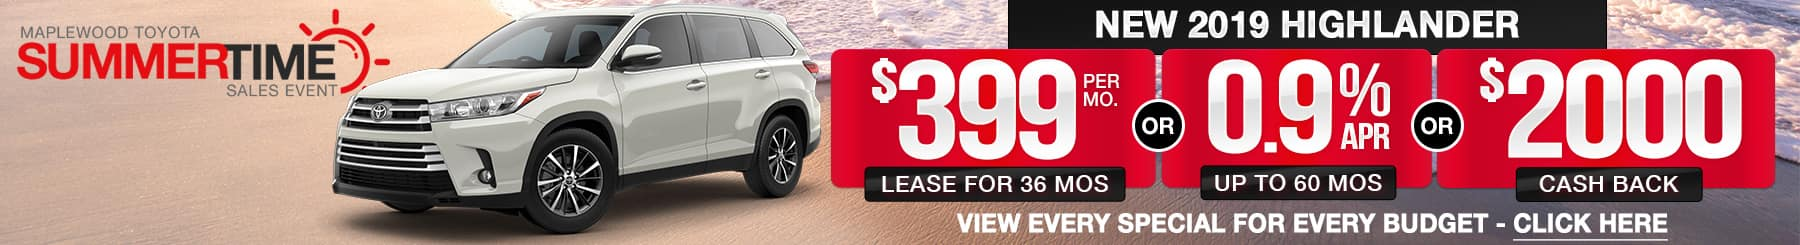 Toyota Highlander Lease or Finance Offers